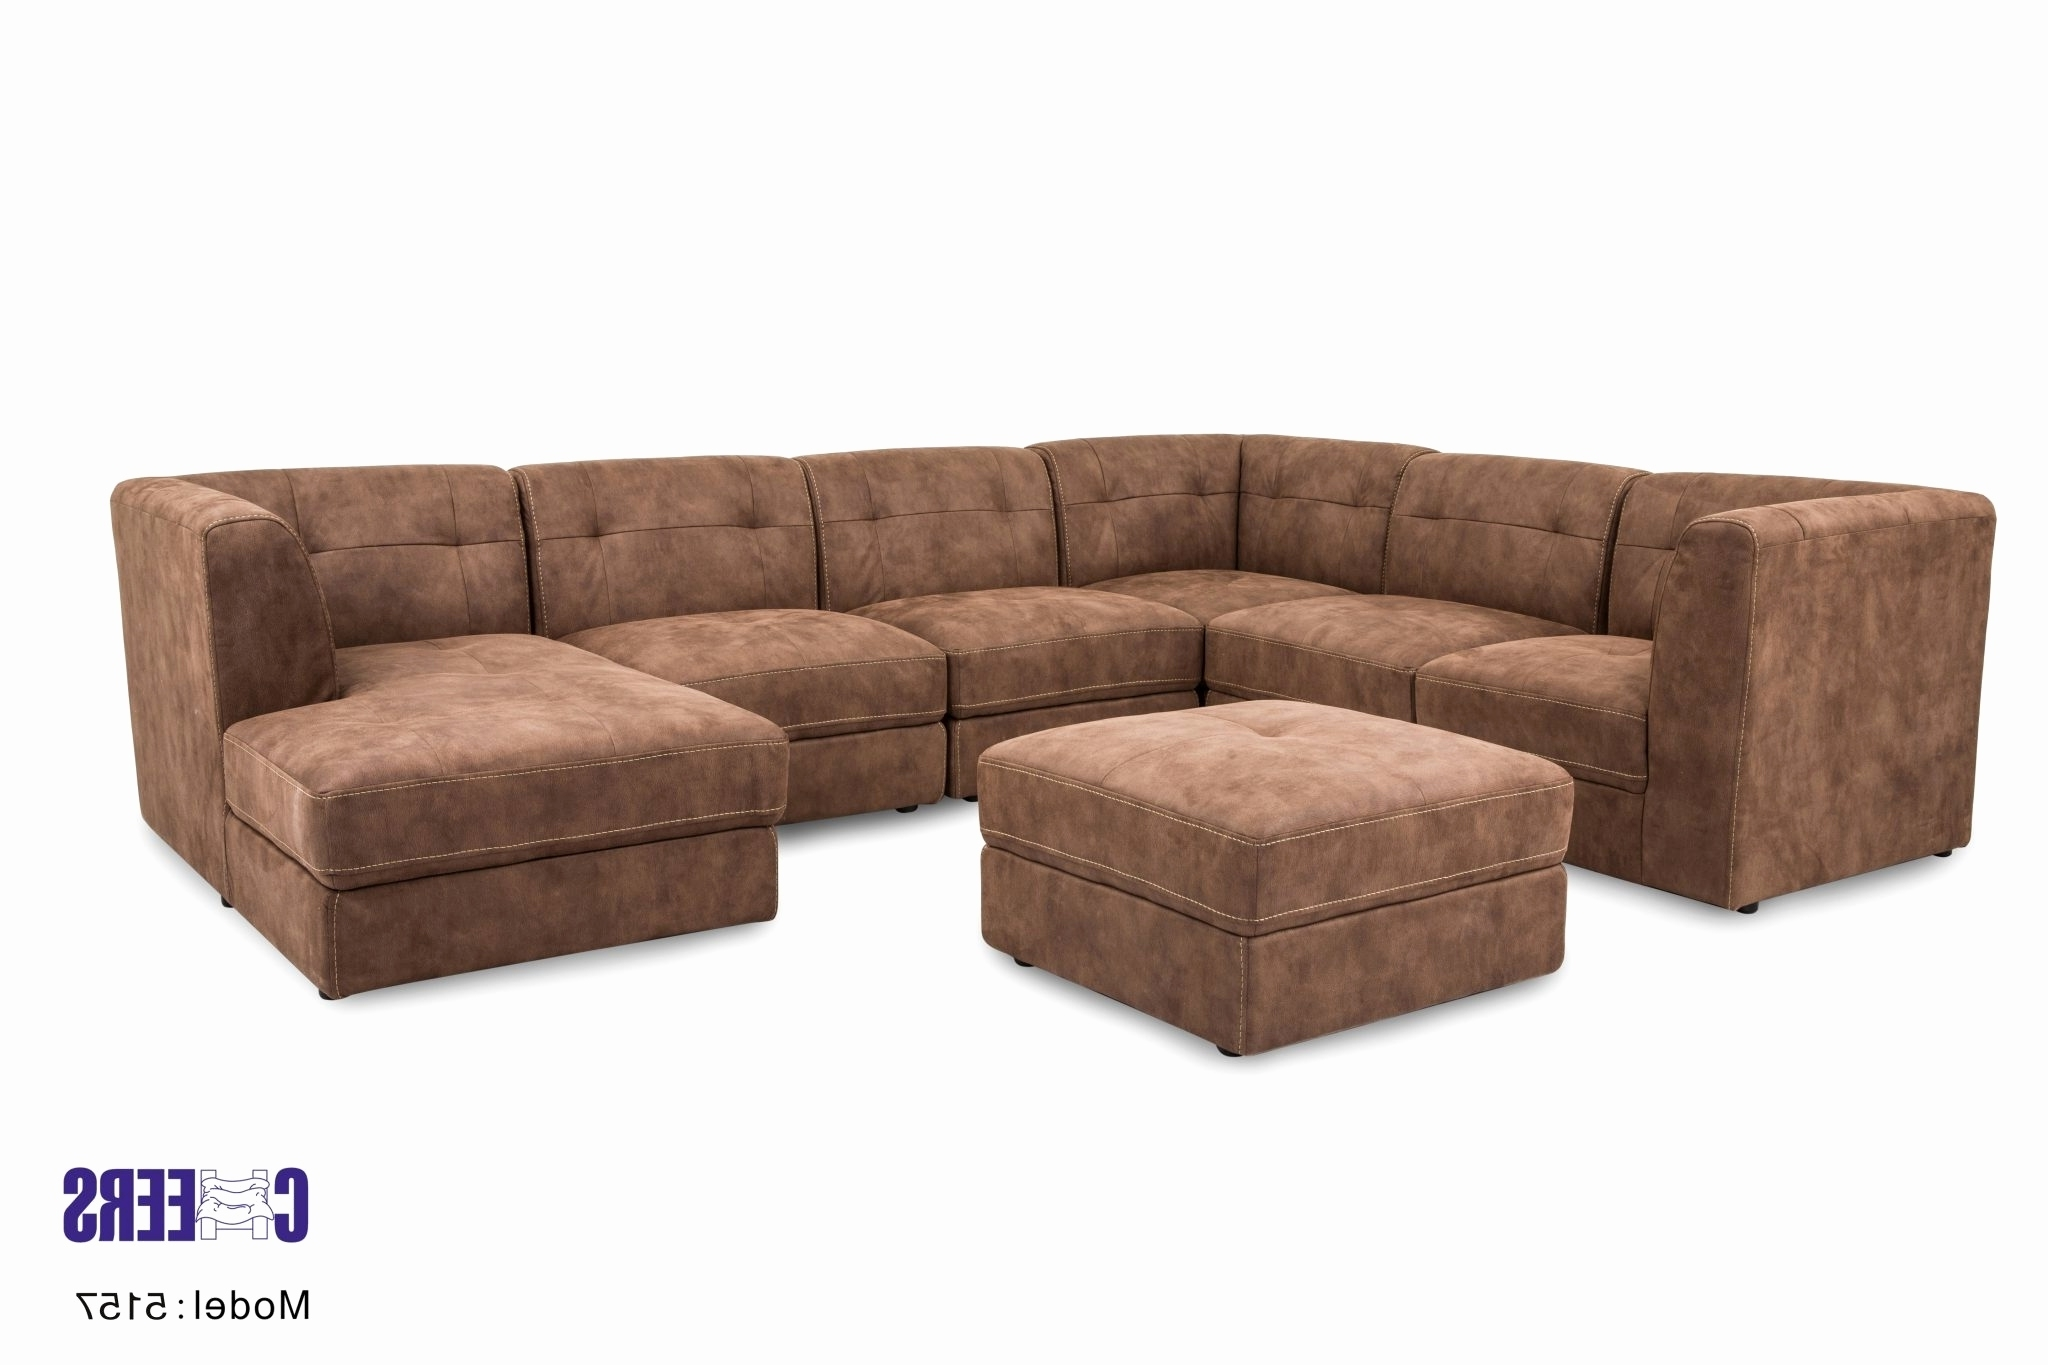 Luxury 6 Piece Sectional Sofa 2018 – Couches Ideas Throughout Most Recent Sam Levitz Sectional Sofas (View 6 of 15)